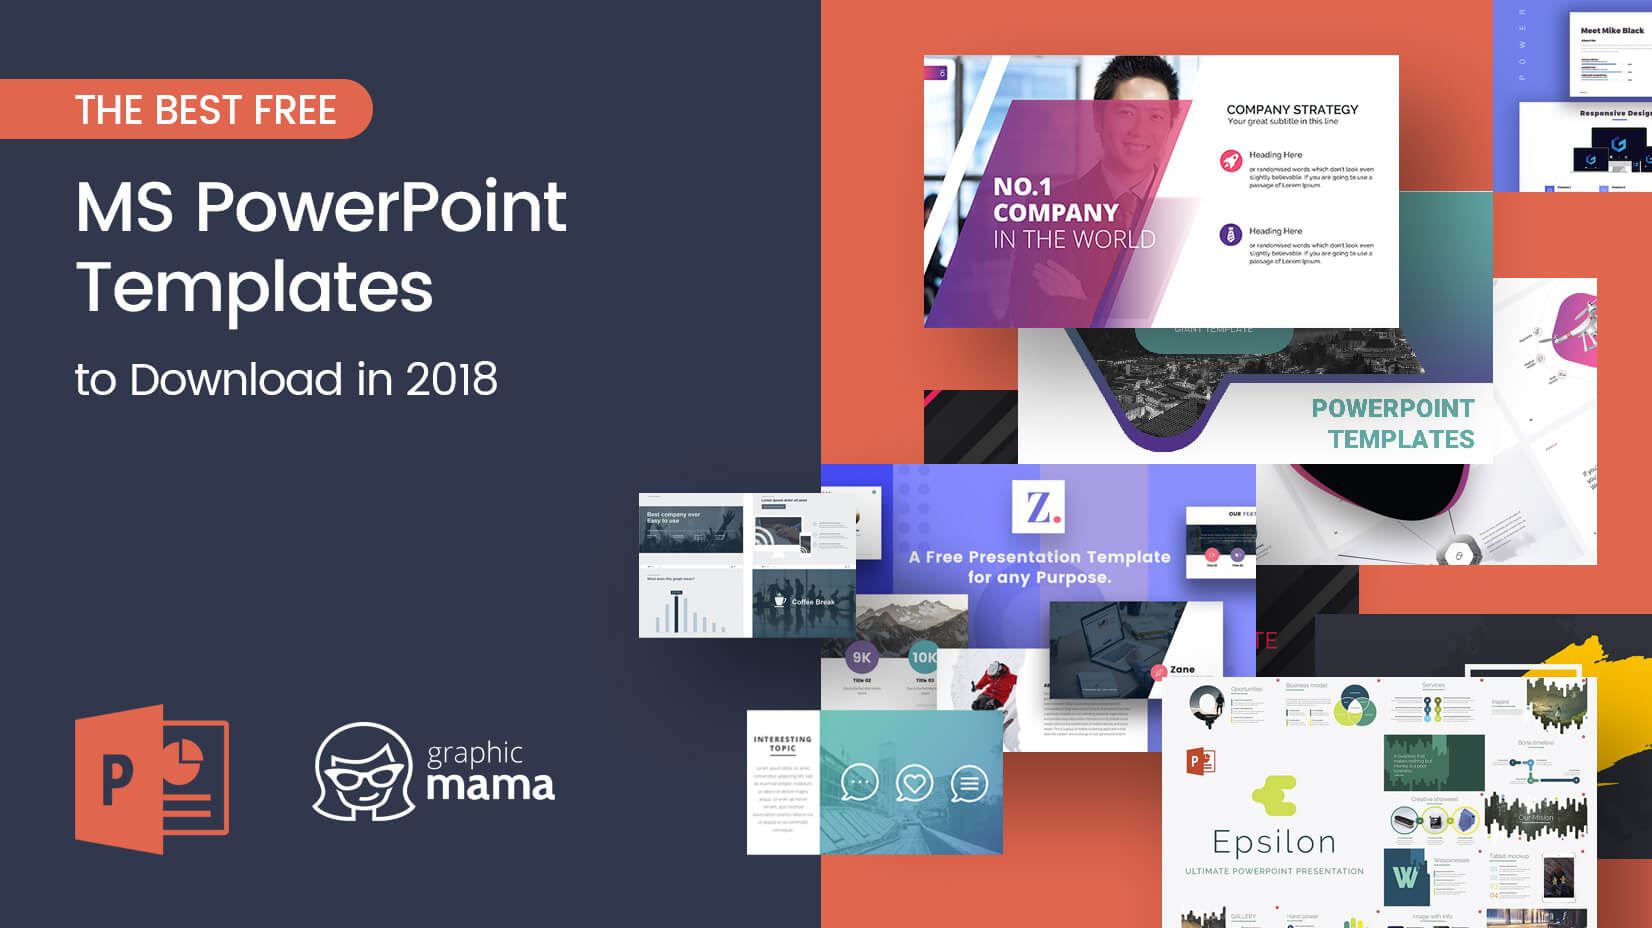 The best free powerpoint templates to download in 2018 graphicmama the best free powerpoint templates to download in 2018 friedricerecipe Choice Image